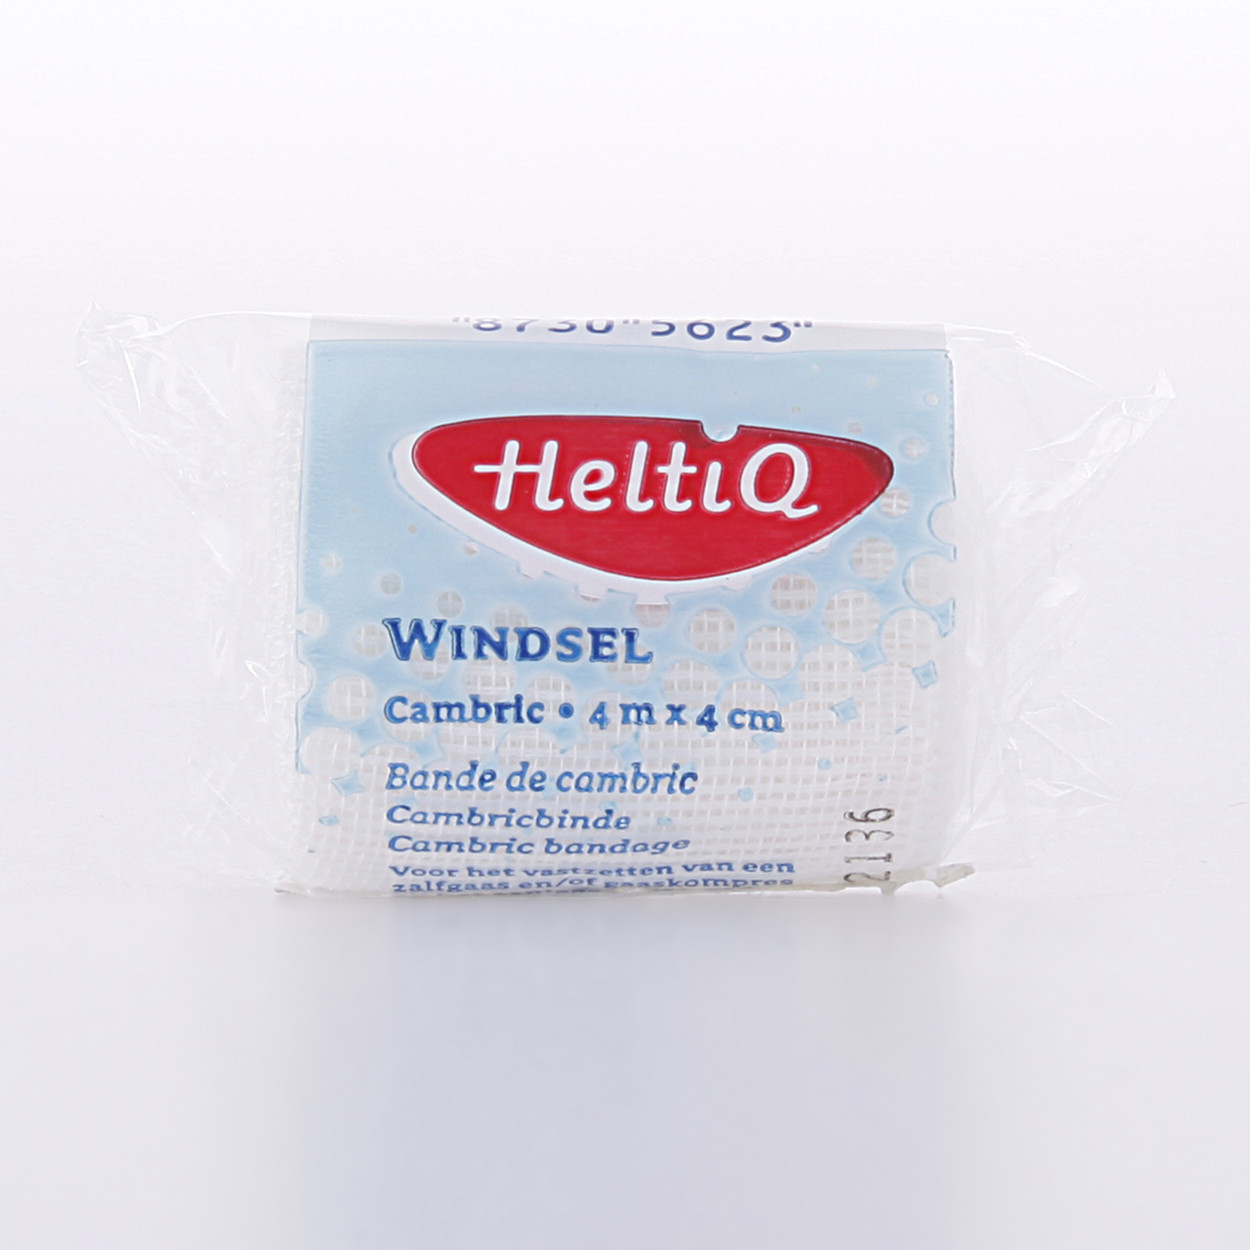 HeltiQ Windsel Cambric